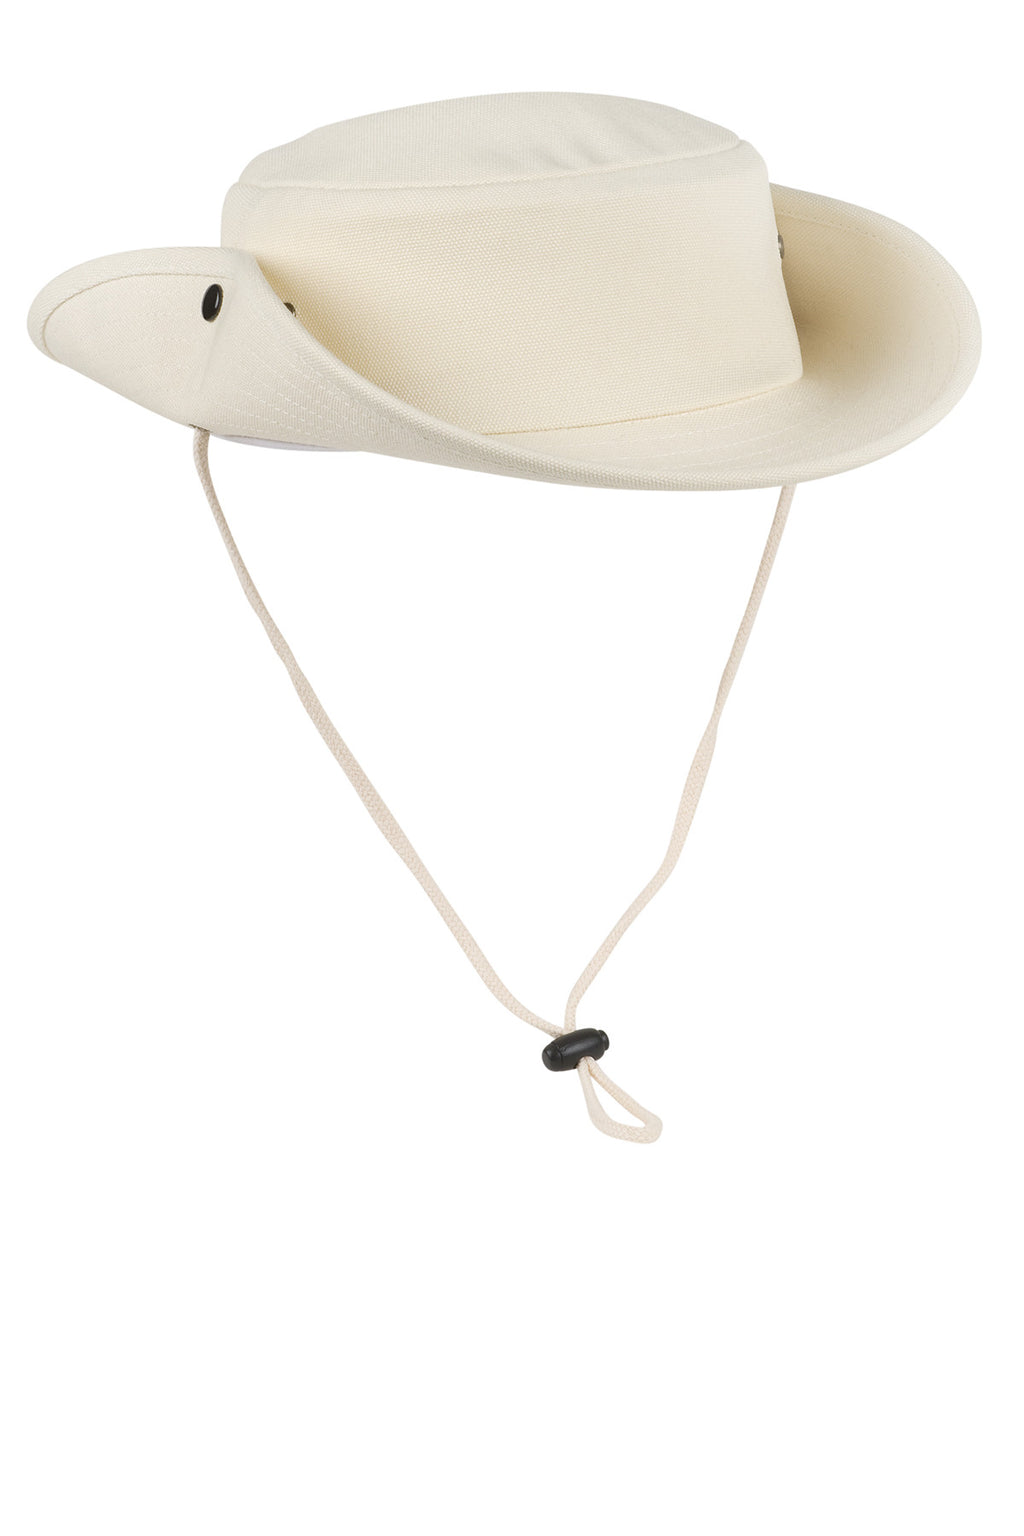 The Outback Hat - SeeThru™